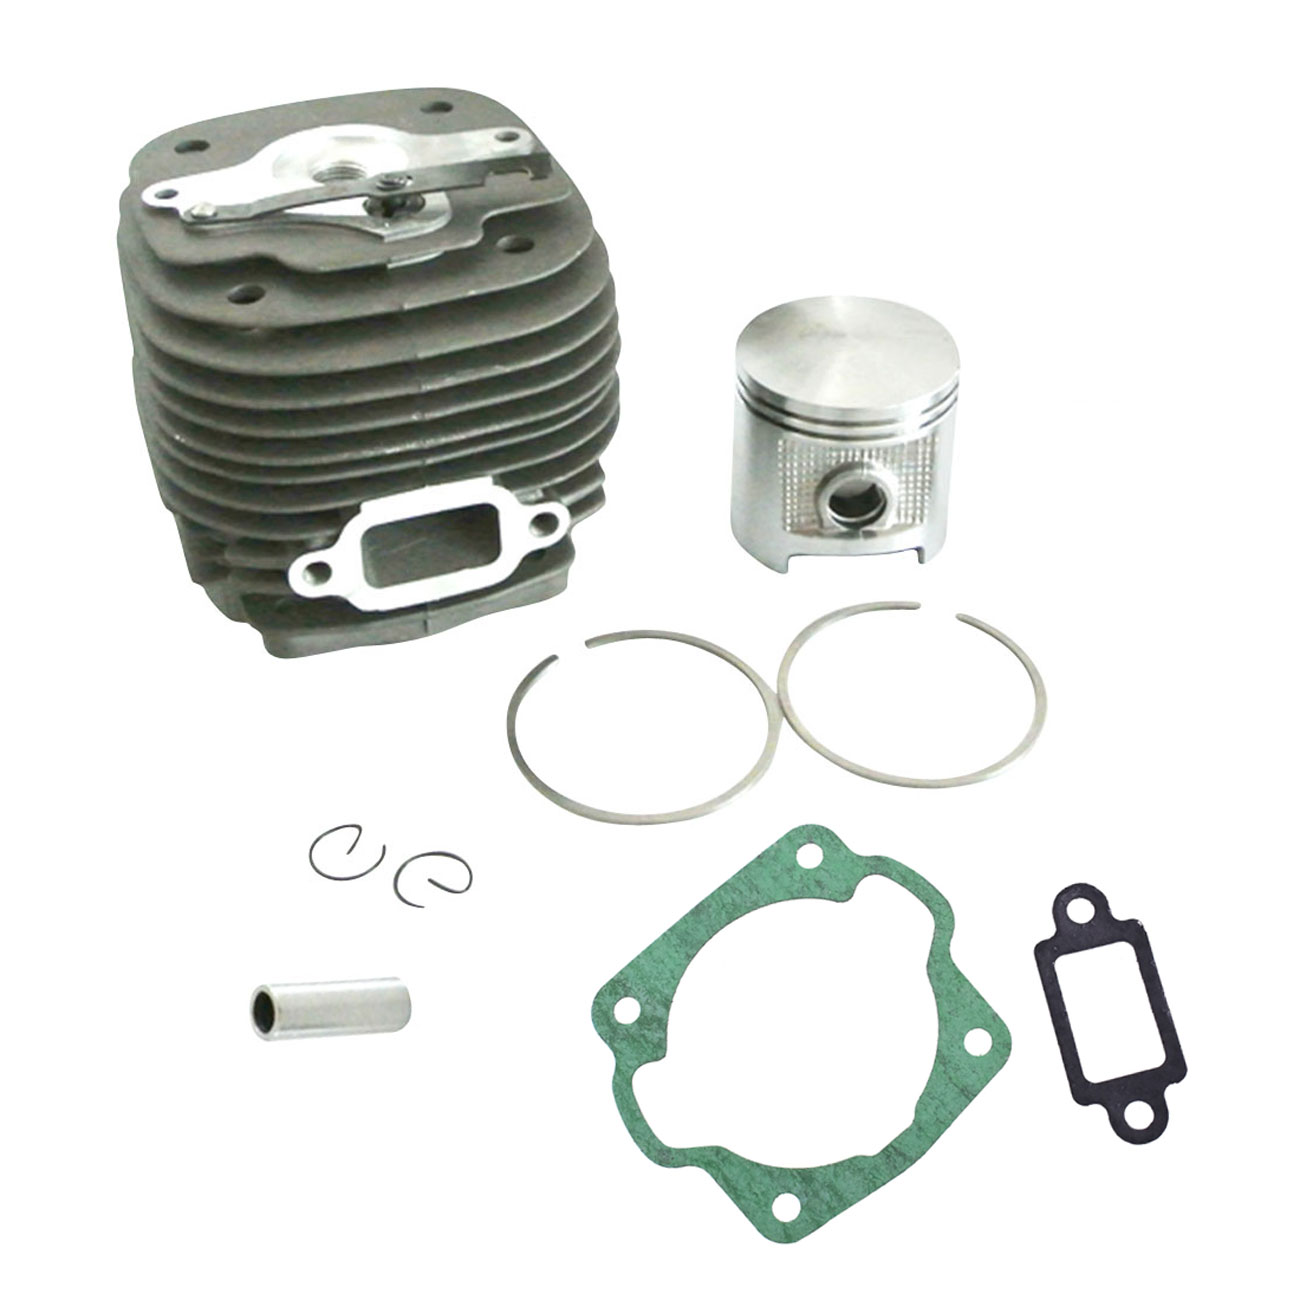 New Cylinder & Piston & Pin & Clips & Rings Kit For STIHL 070 090 Chainsaw 58mm 38mm om36 cylinder kit fits efco oleo mac om emak 436 sparta 36 37 om38 trimmer zylinder w piston ring pin clips assembly